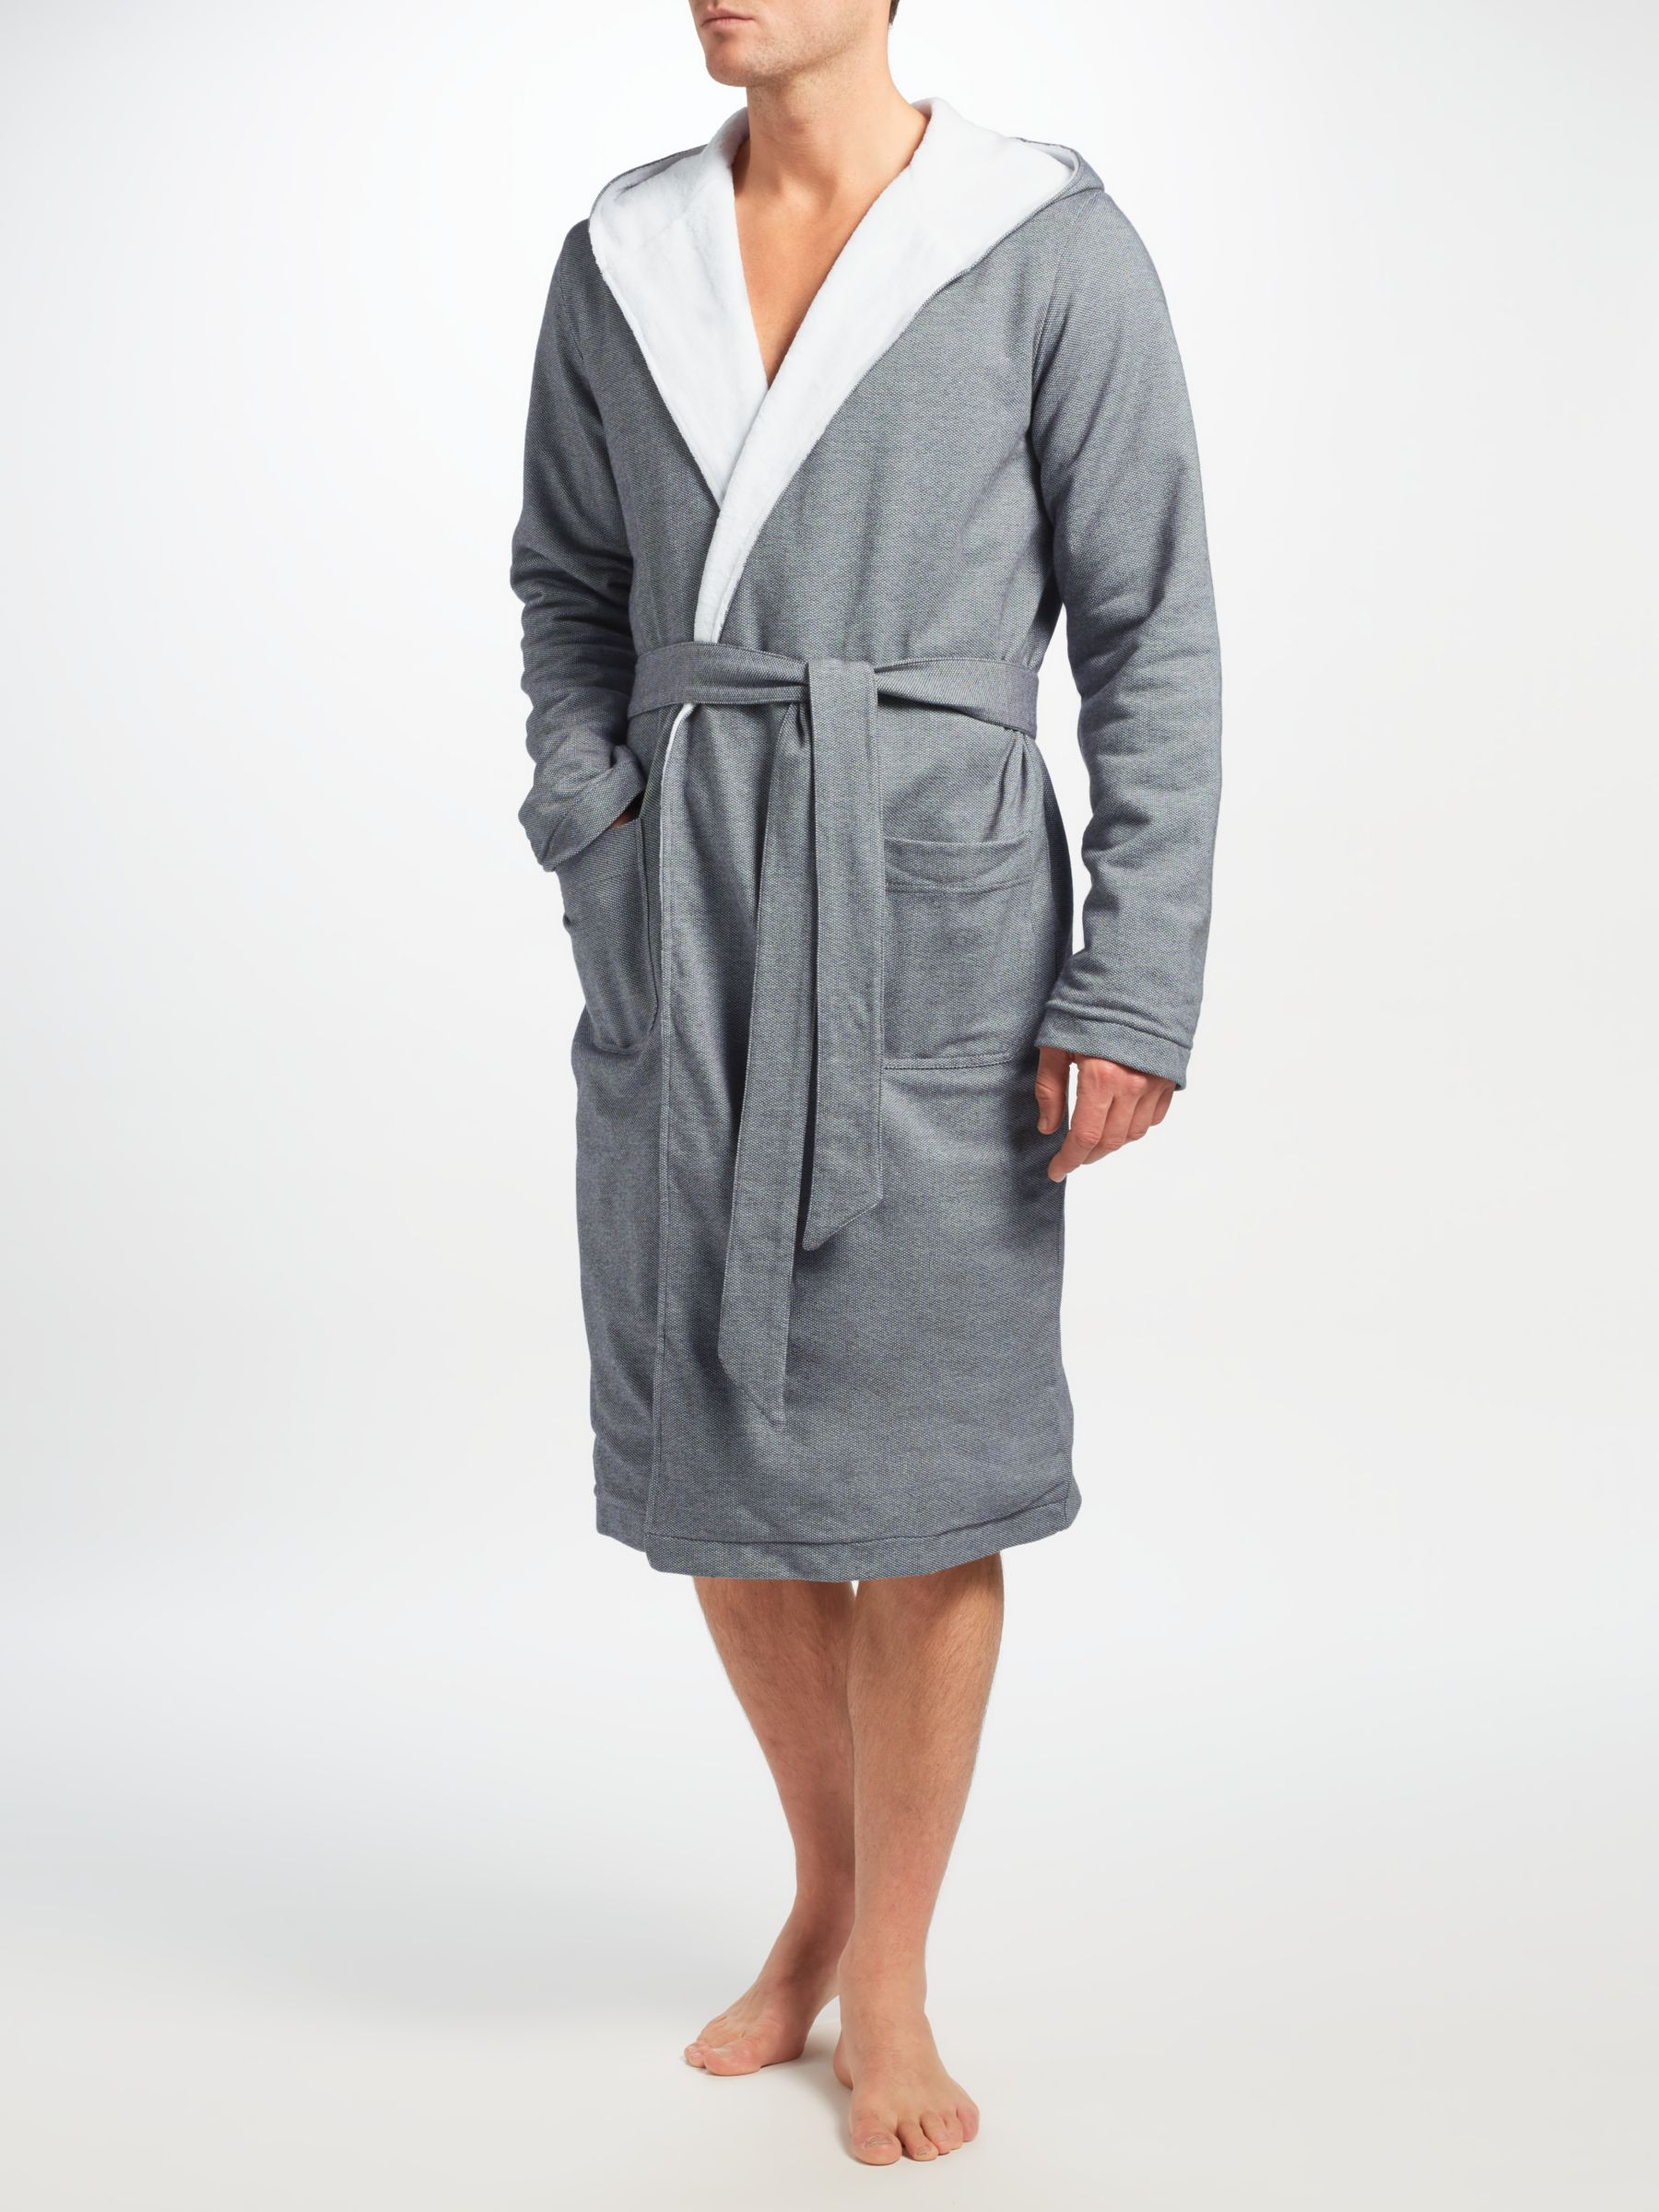 Hamilton And Hare Cotton Towelling Boxing Robe Grey At John Lewis Partners